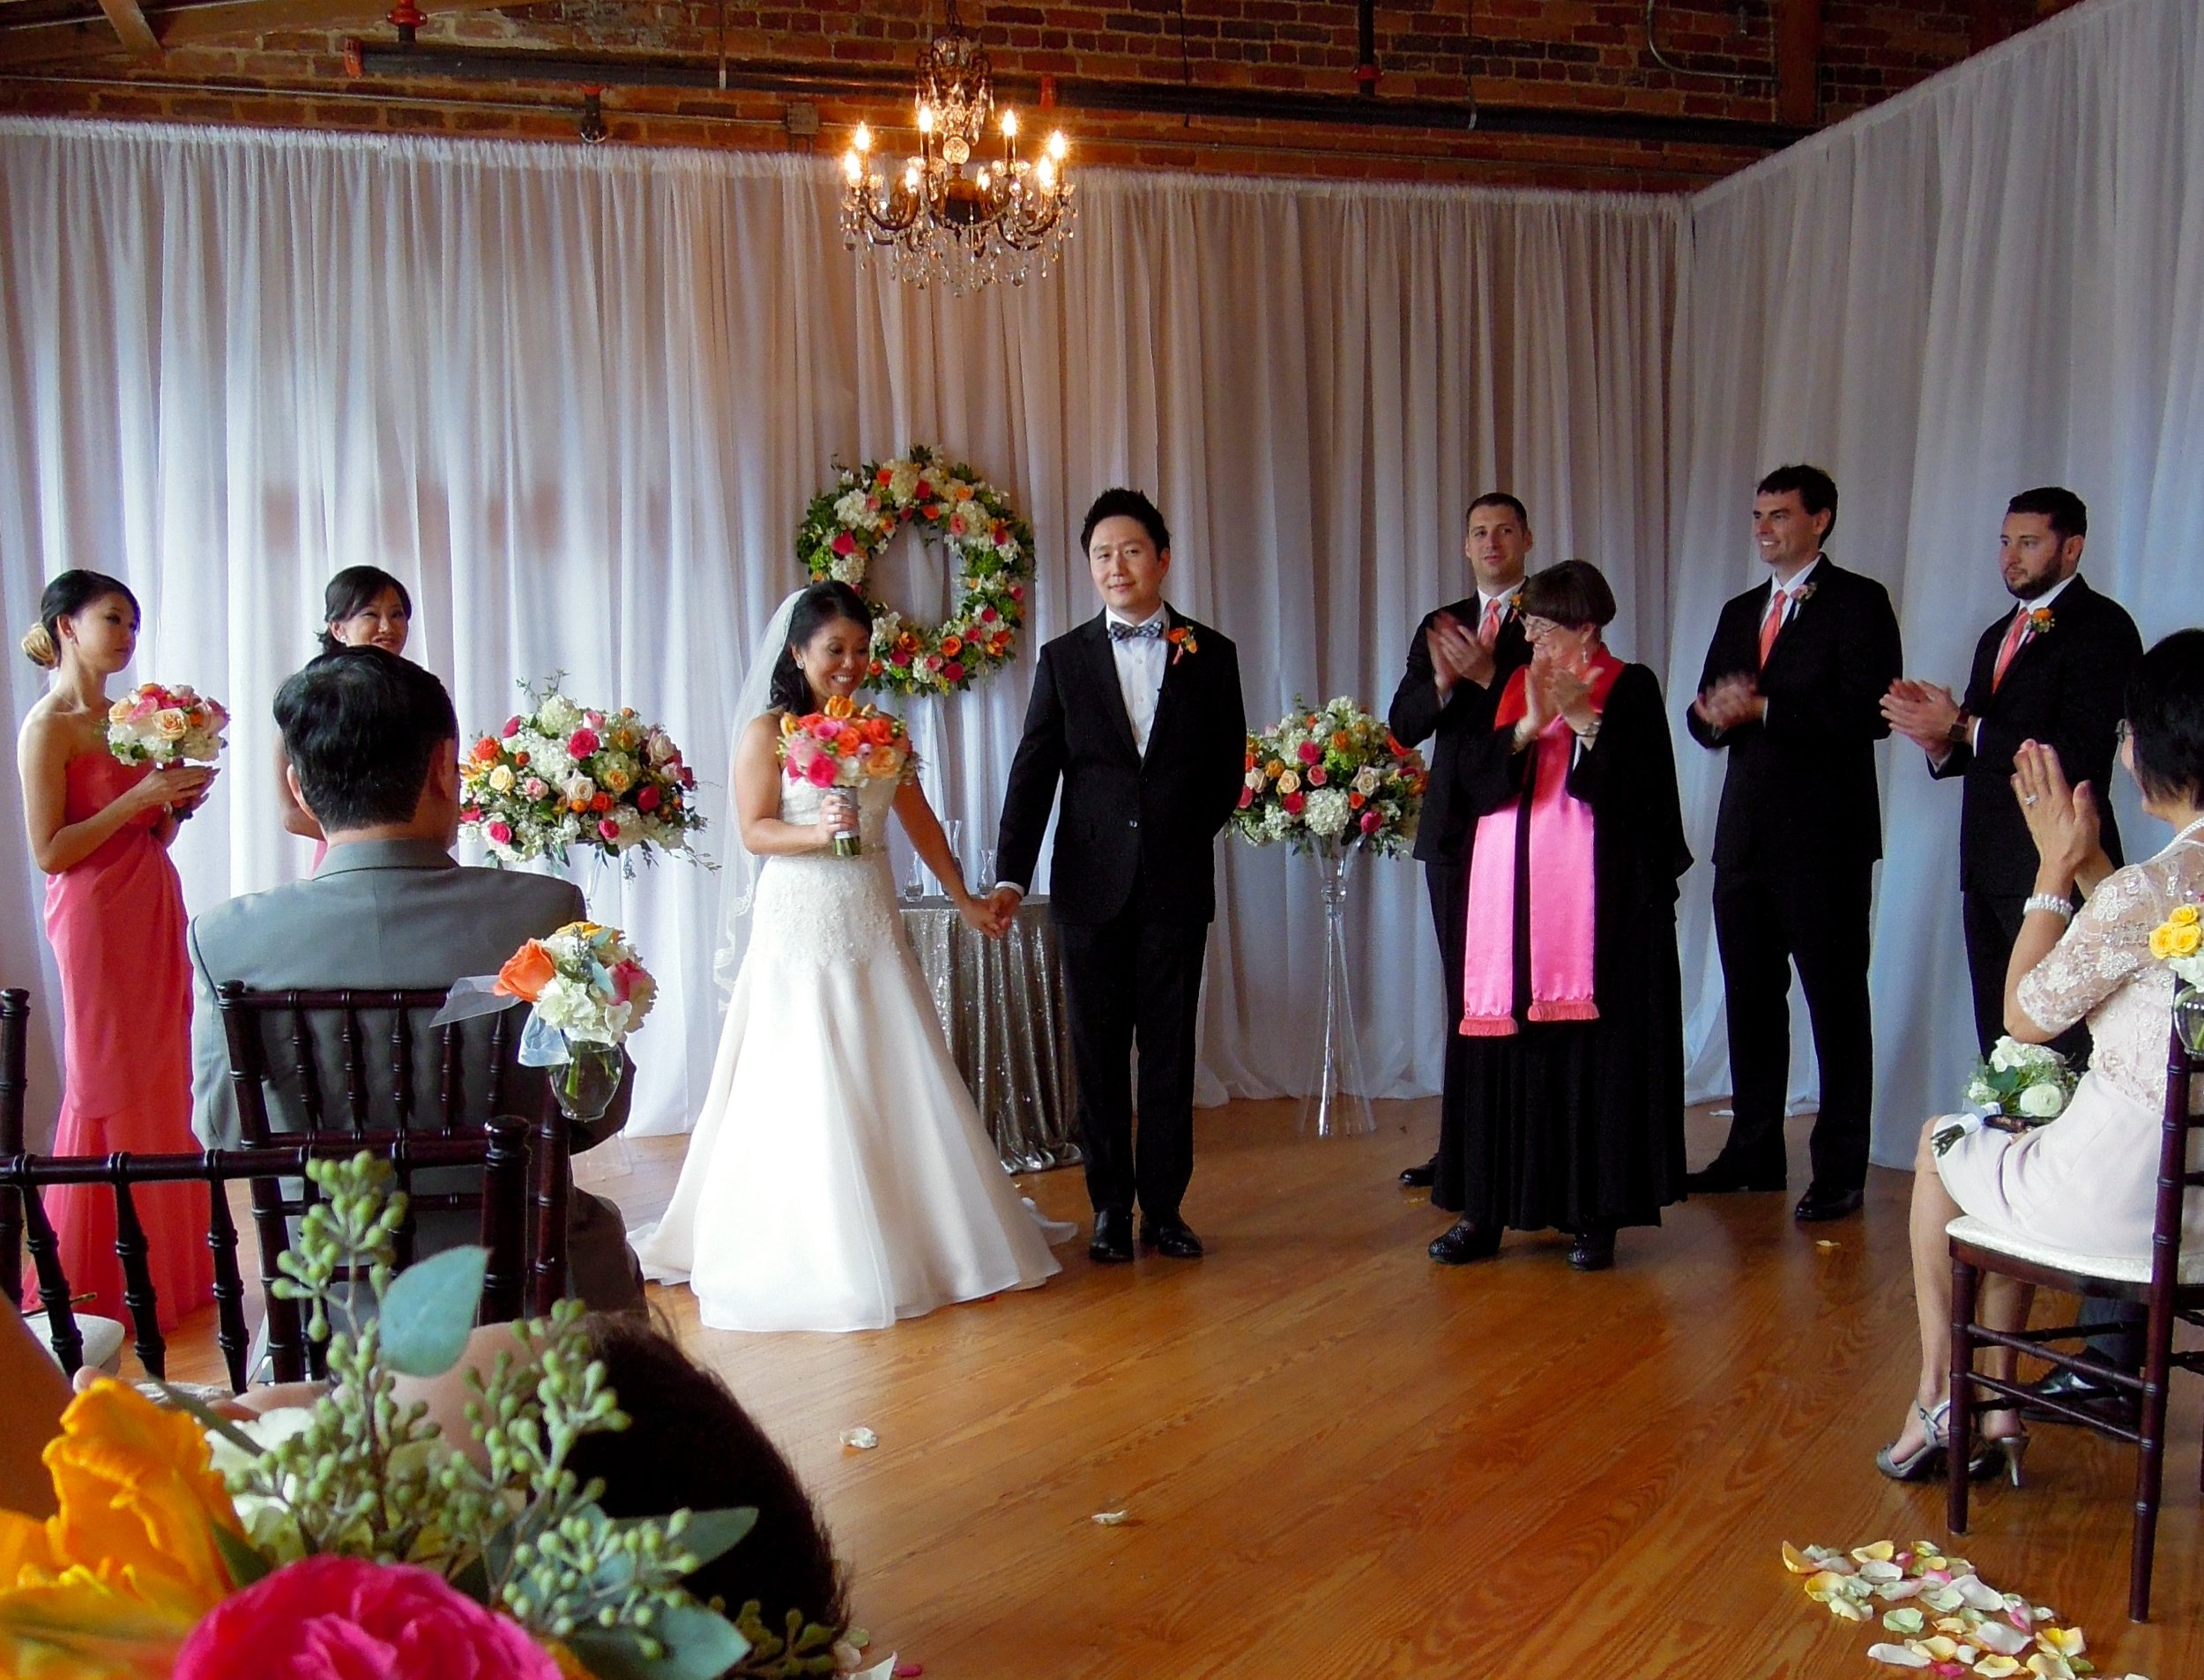 Melrose Knitting Mill in Raleigh Wedding